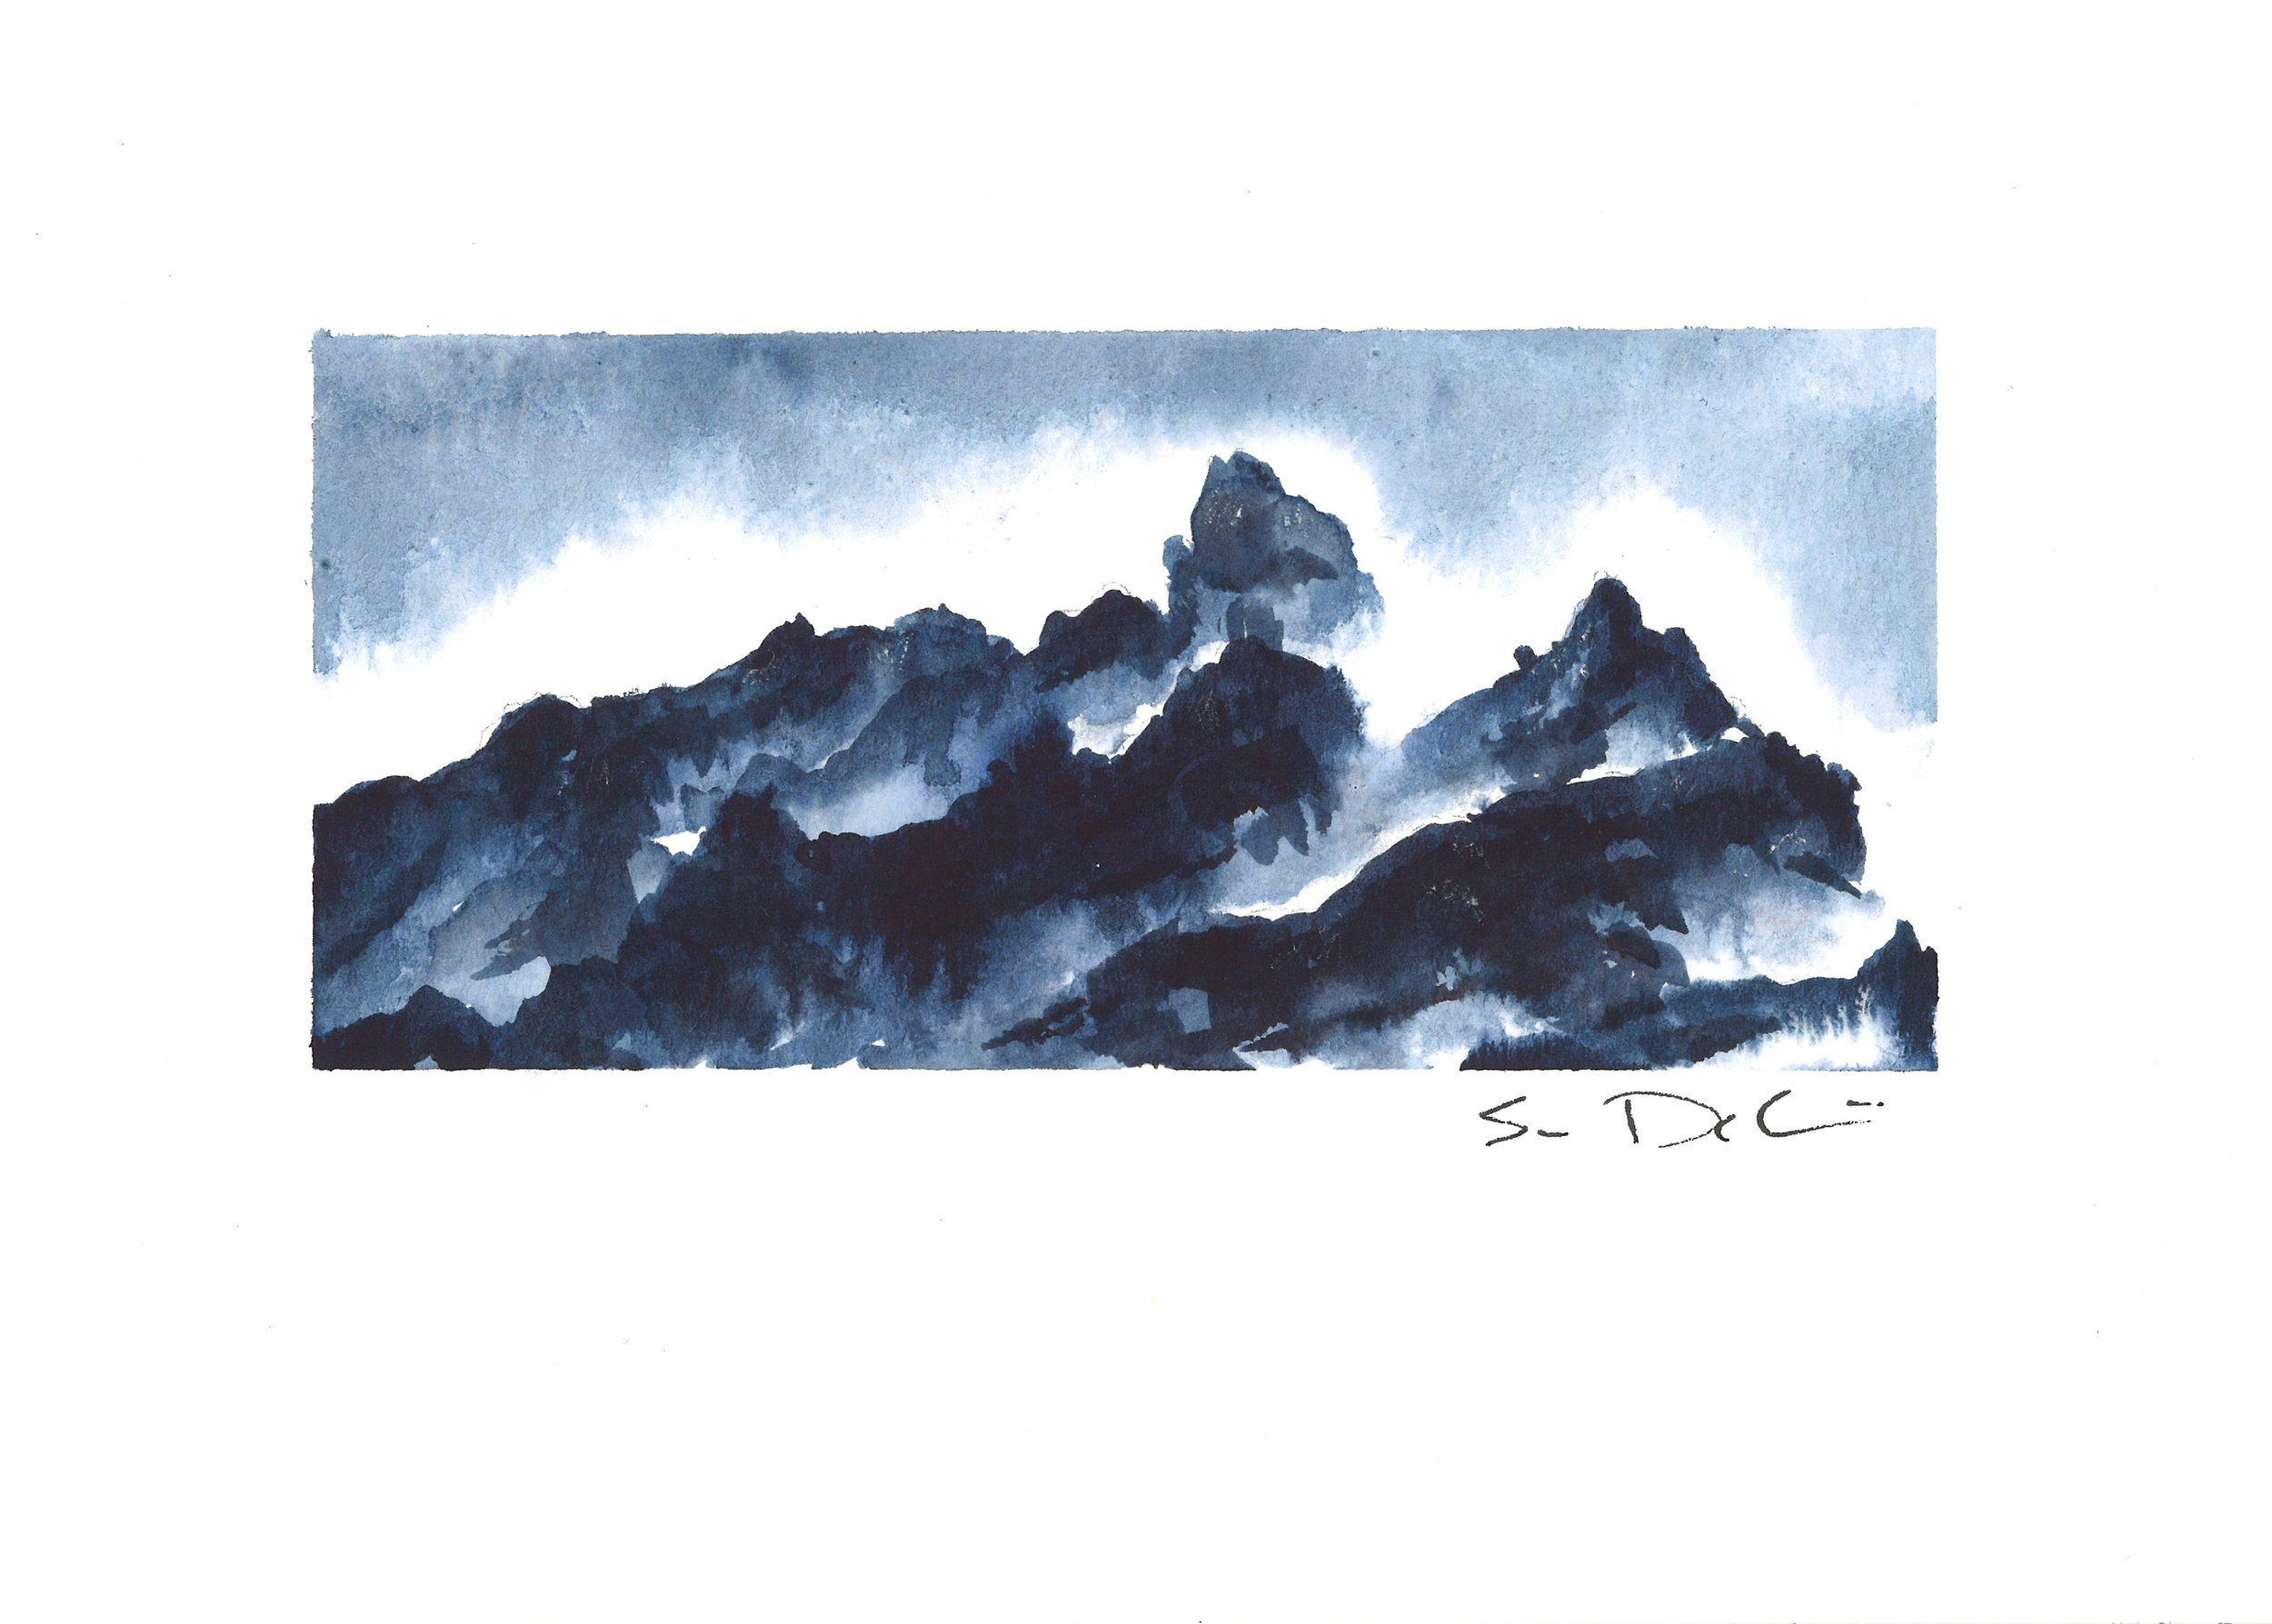 peaks among the mist